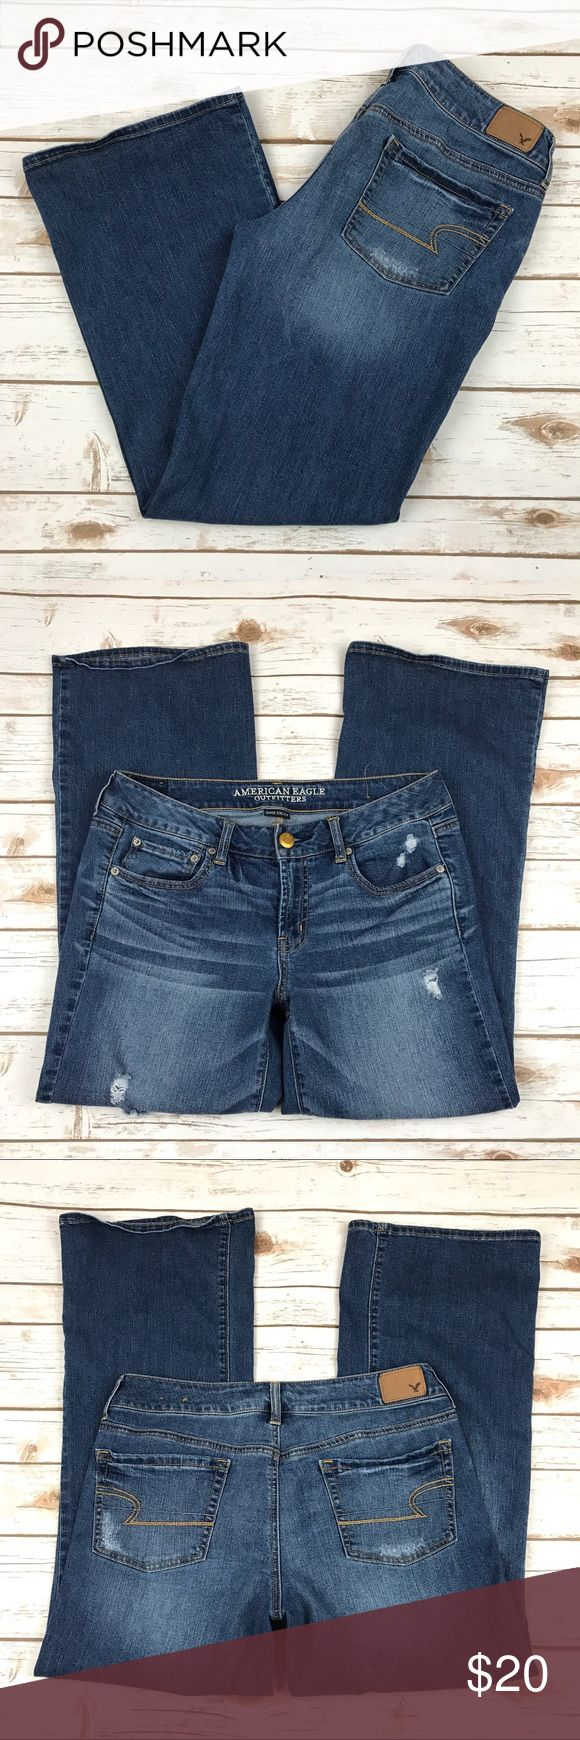 """American Eagle Favorite Boyfriend Jeans 14 Short American Eagle Favorite Boyfriend Jeans Size 14 Short Distressed Materials: 71% cotton, 14% polyester, 14 viscose  Actual measurements taken laying flat: waist- 15.5"""" rise- 8.5"""" inseam- 28.5"""" leg opening- 10.5""""   Location- C5 American Eagle Outfitters Jeans Boyfriend"""